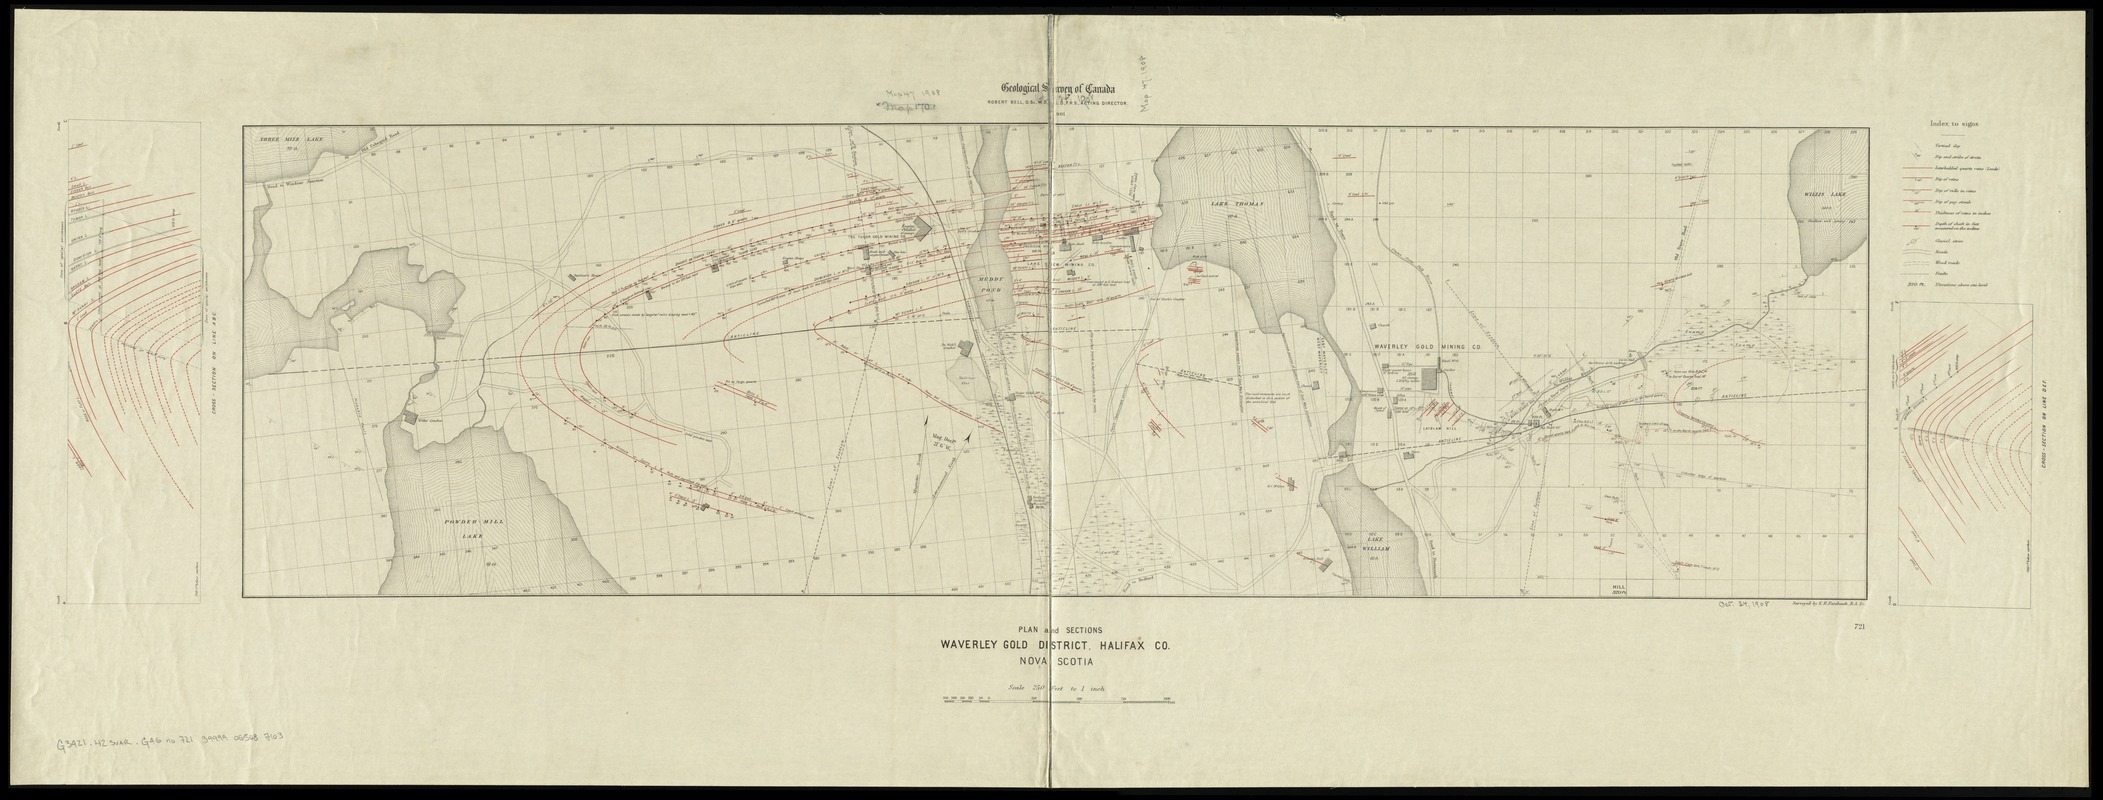 Plan and sections Waverley gold district, Halifax Co., Nova Scotia